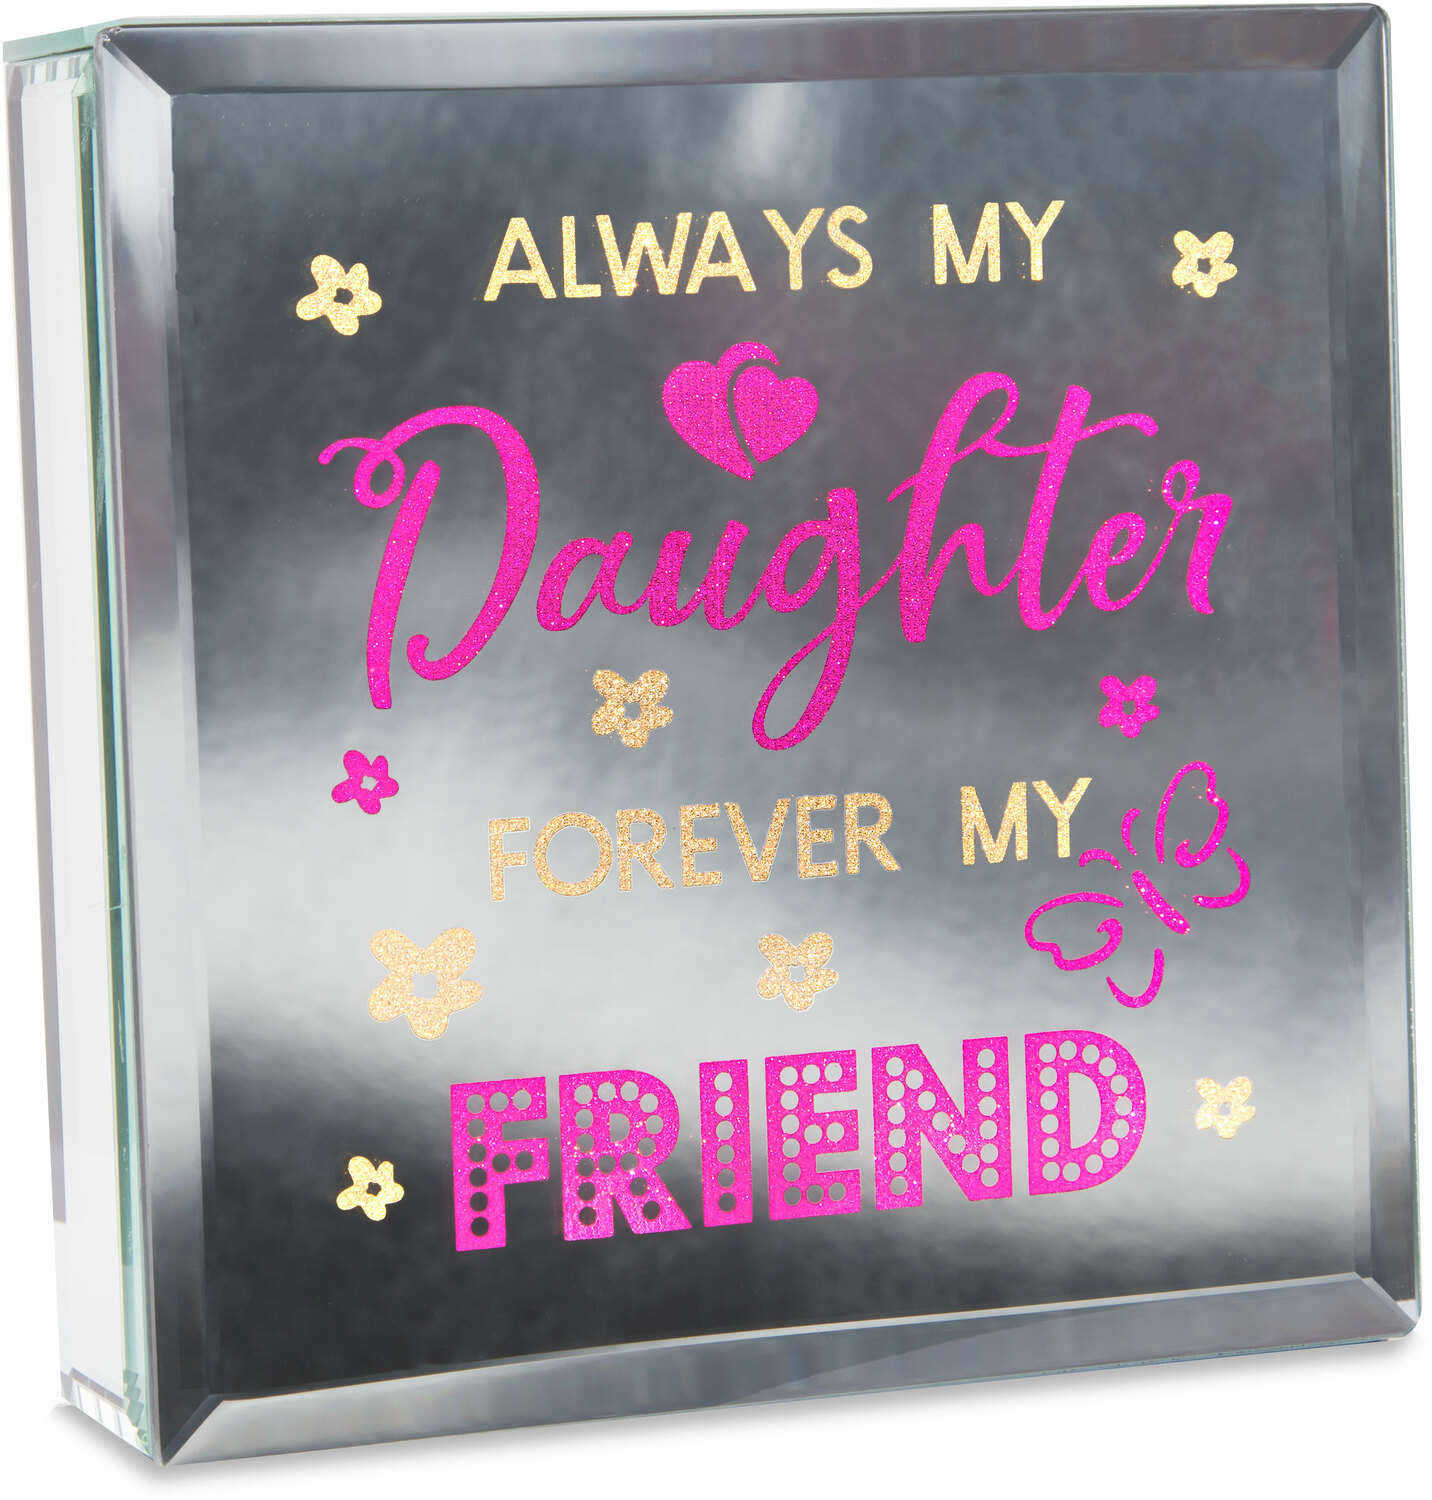 "Always by Reflections of You - Always - 6"" Lit-Mirrored Plaque"